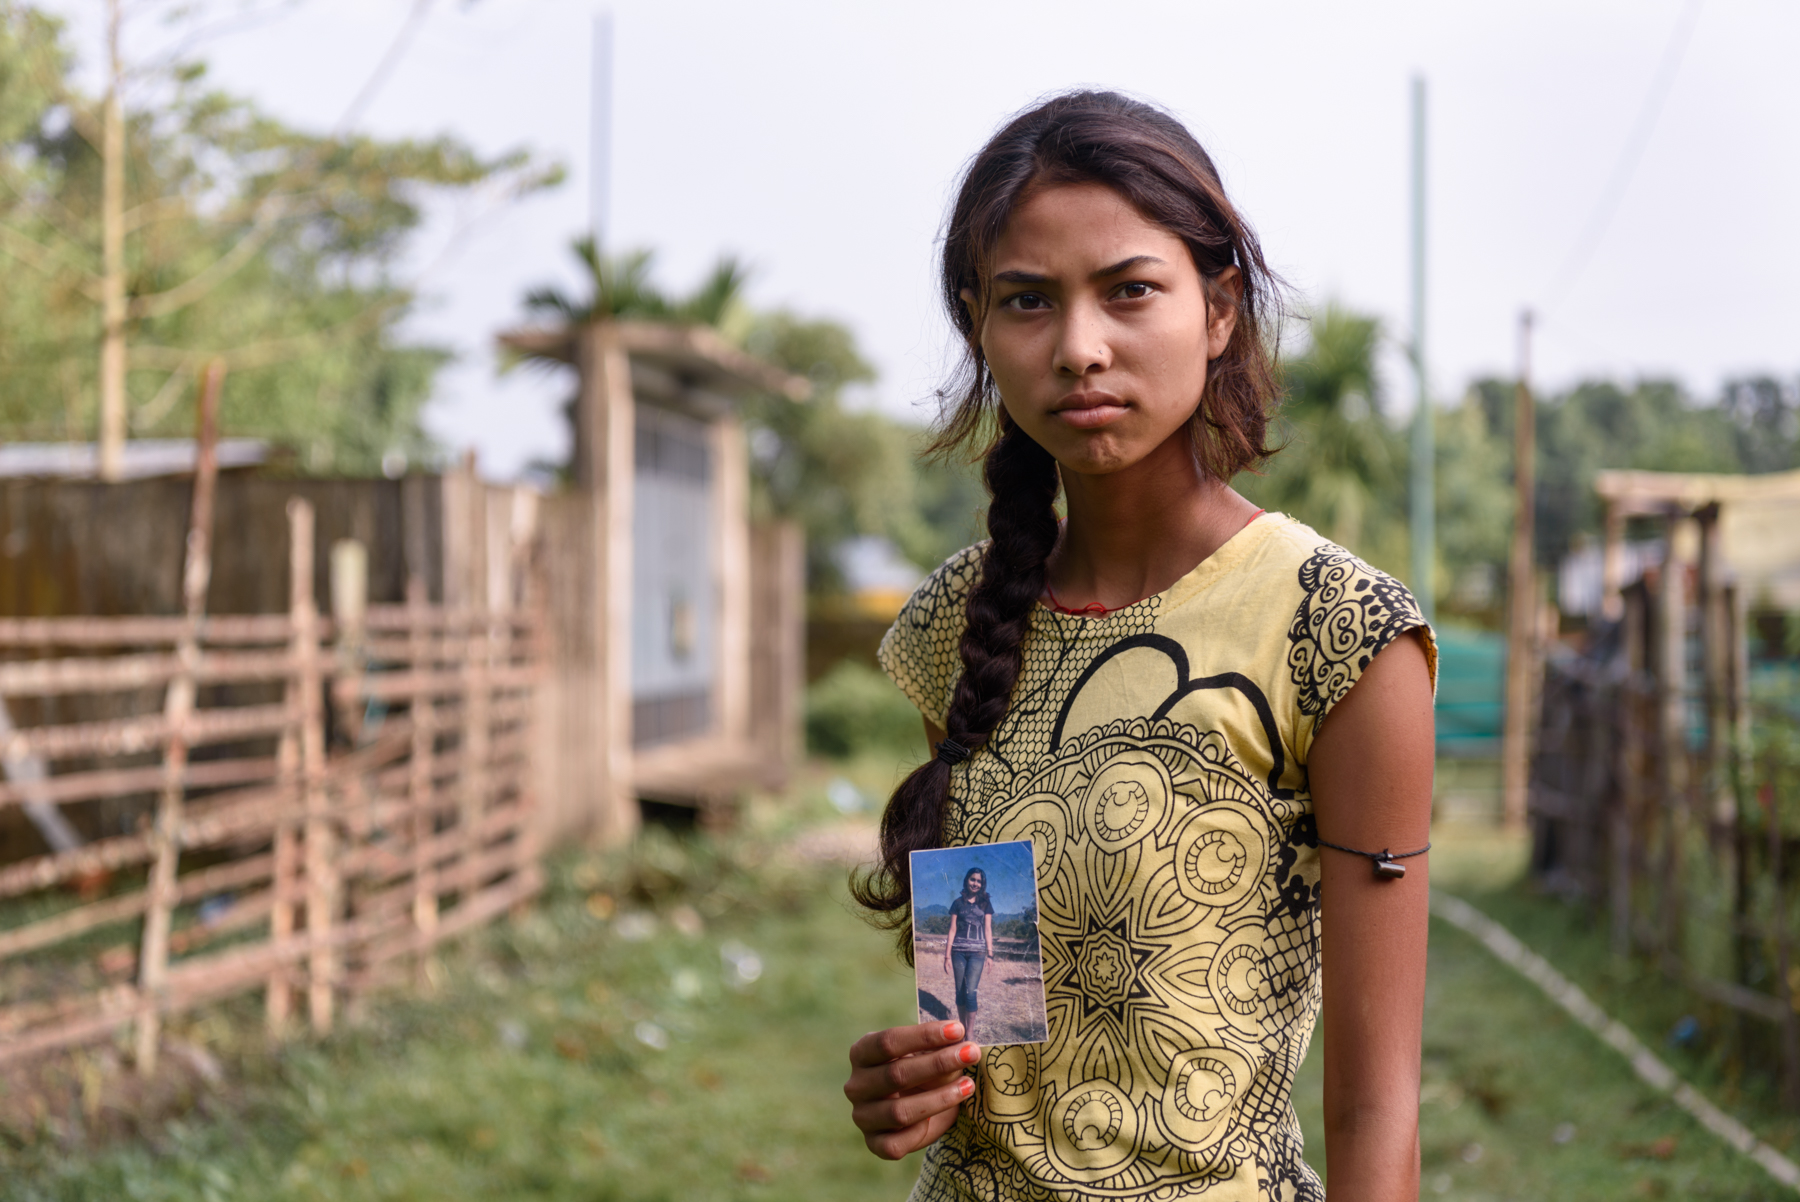 Binita Biswakarma, 15, with a photograph of her sister Ranjana. Ranjana, 16, has been missing since 2009. She was trafficked by her uncle while travelling with him for a family wedding. Binita's parents are illiterate and never filed a police report until two years ago, following Binita's continued persuasion.